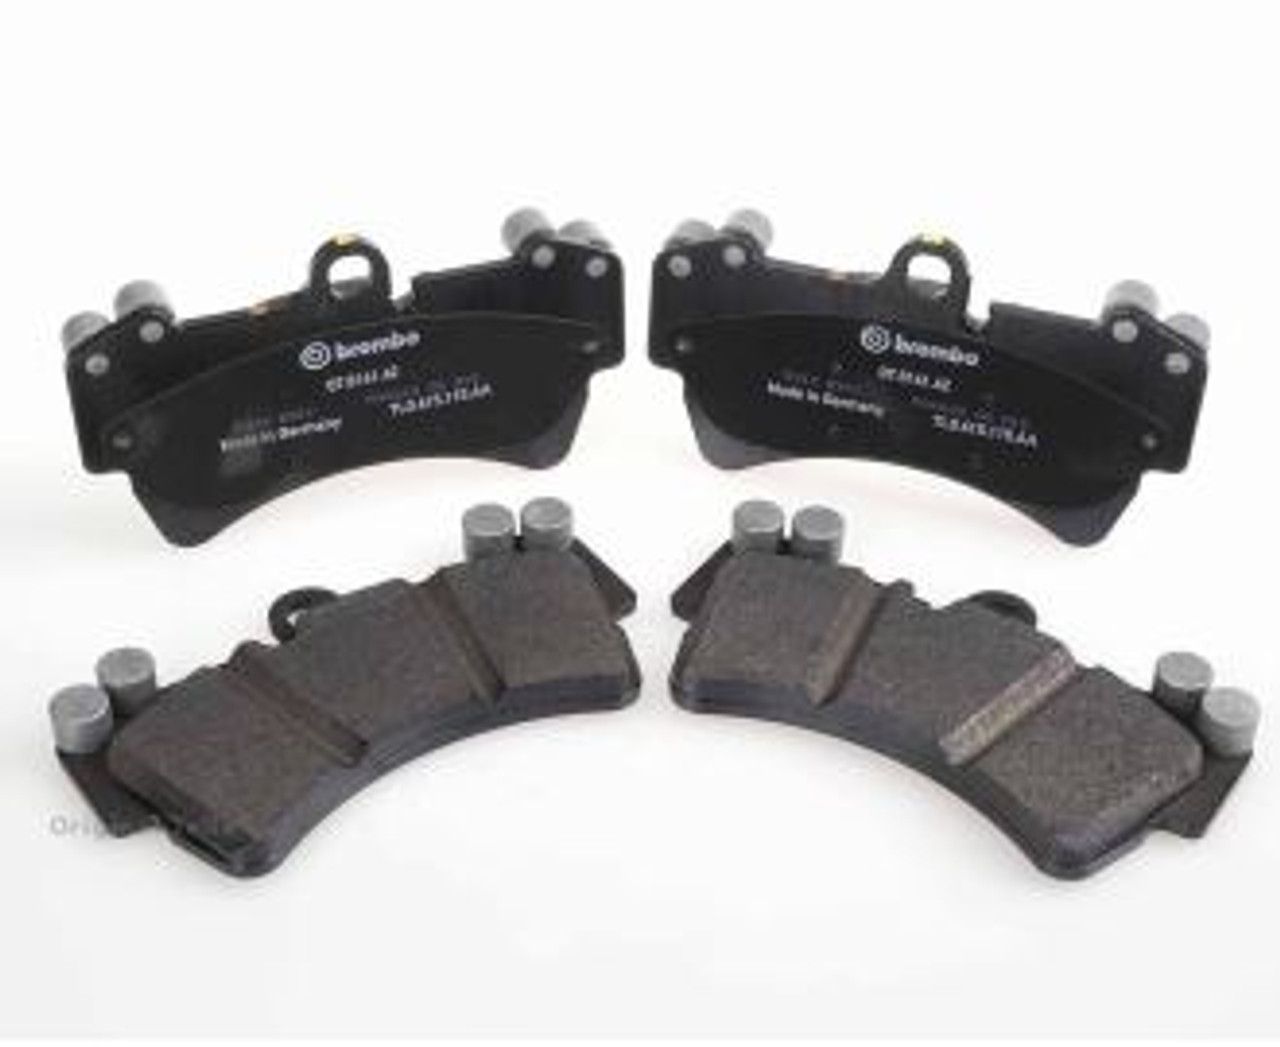 Audi Q7 Front Brake Pads With Wear Sensor Wires 7L0698151R